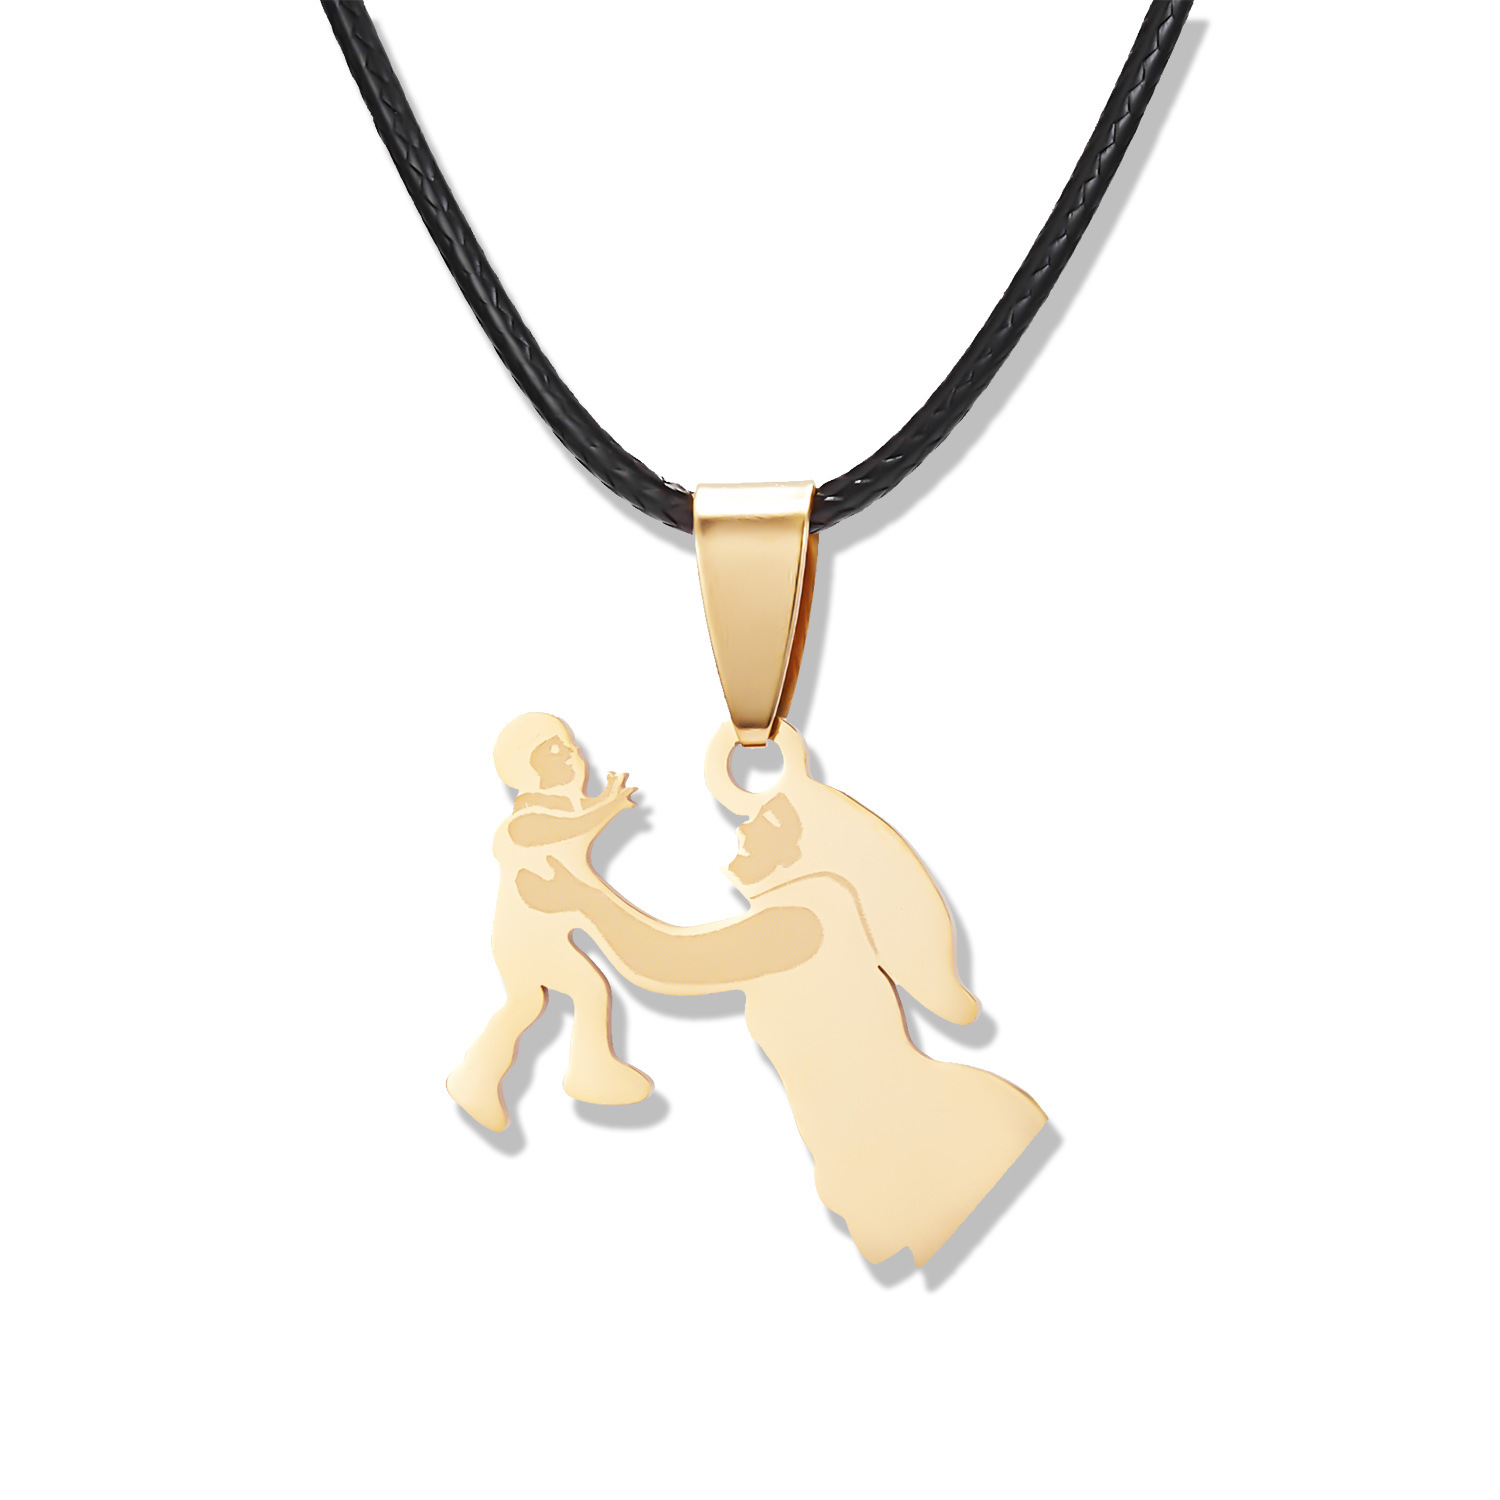 Stainless Steel Mother and Child Love Necklace with Black Leather Rope for Mother's Gift